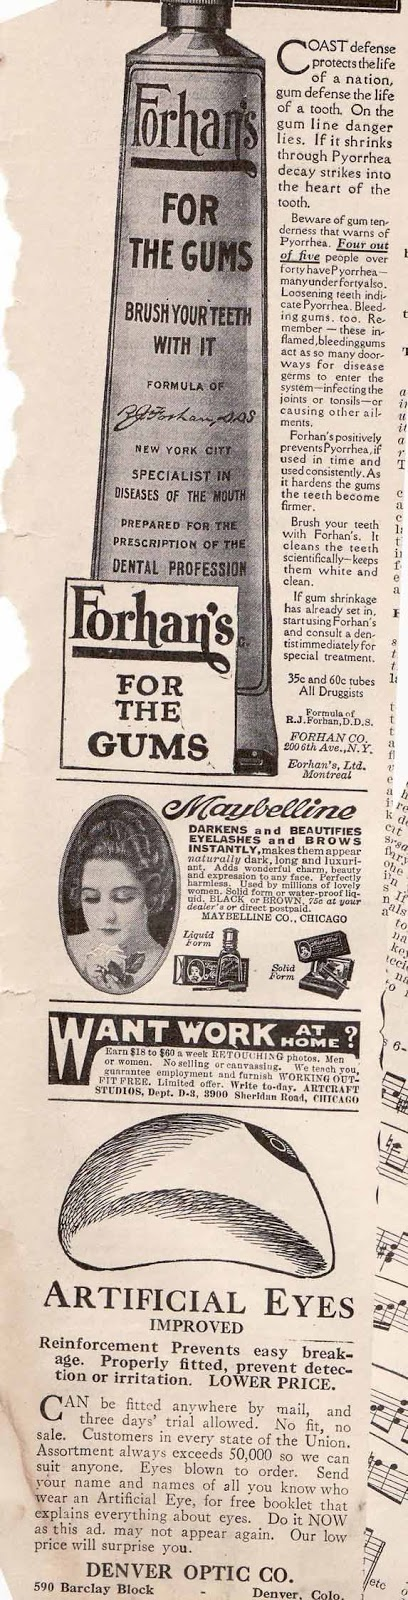 Forhans toothpaste and artificial eyes 1926